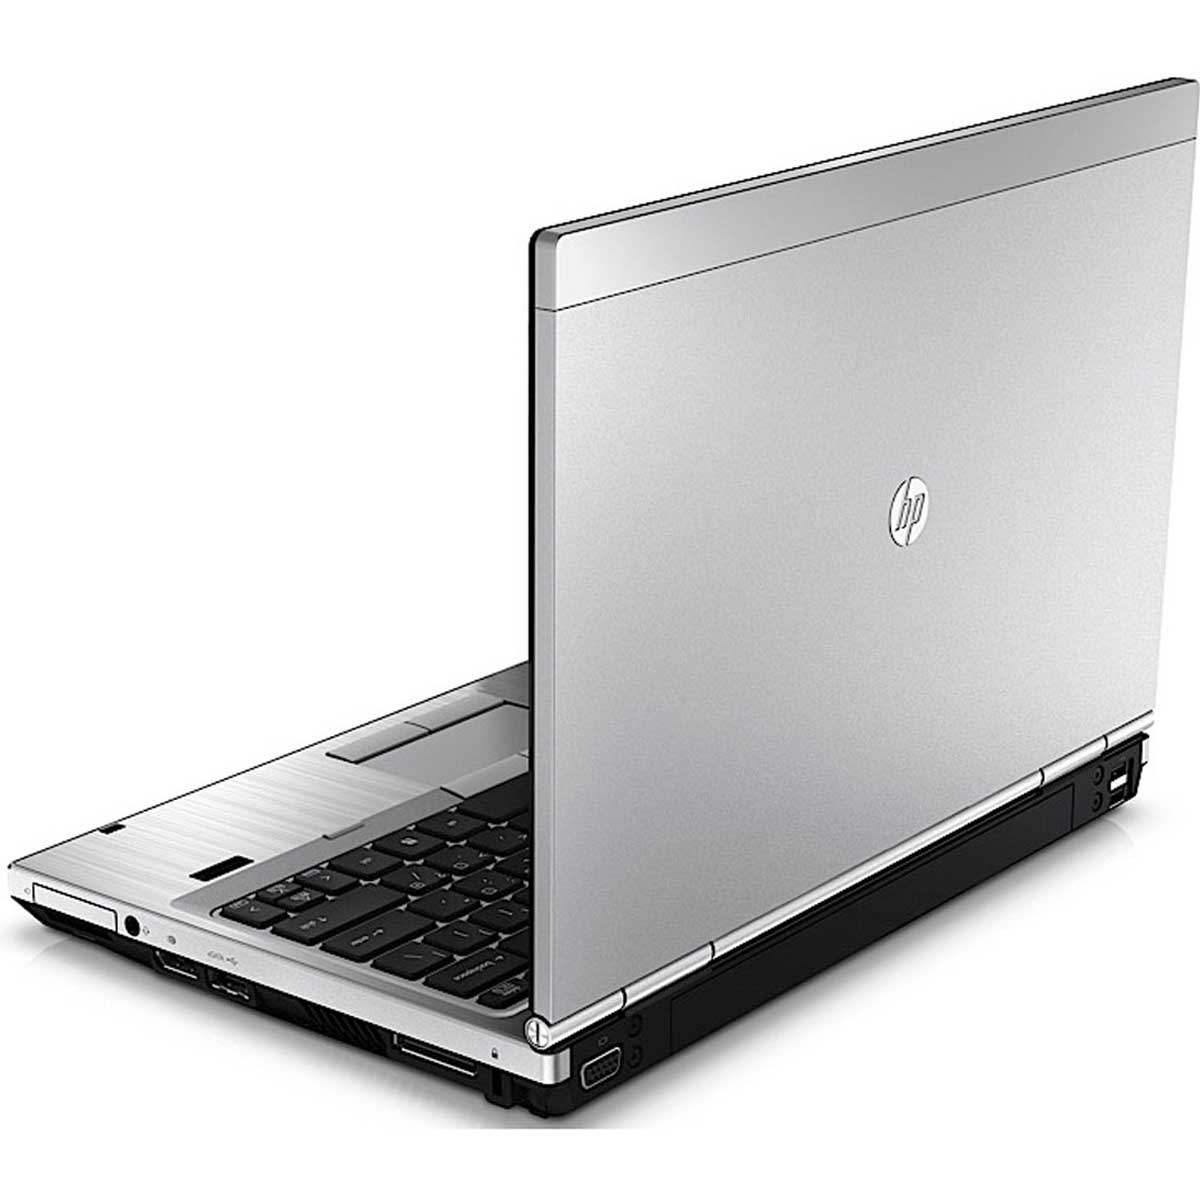 Hp Elitebook 8460p Hp Elitebook 8460p Laptop Price